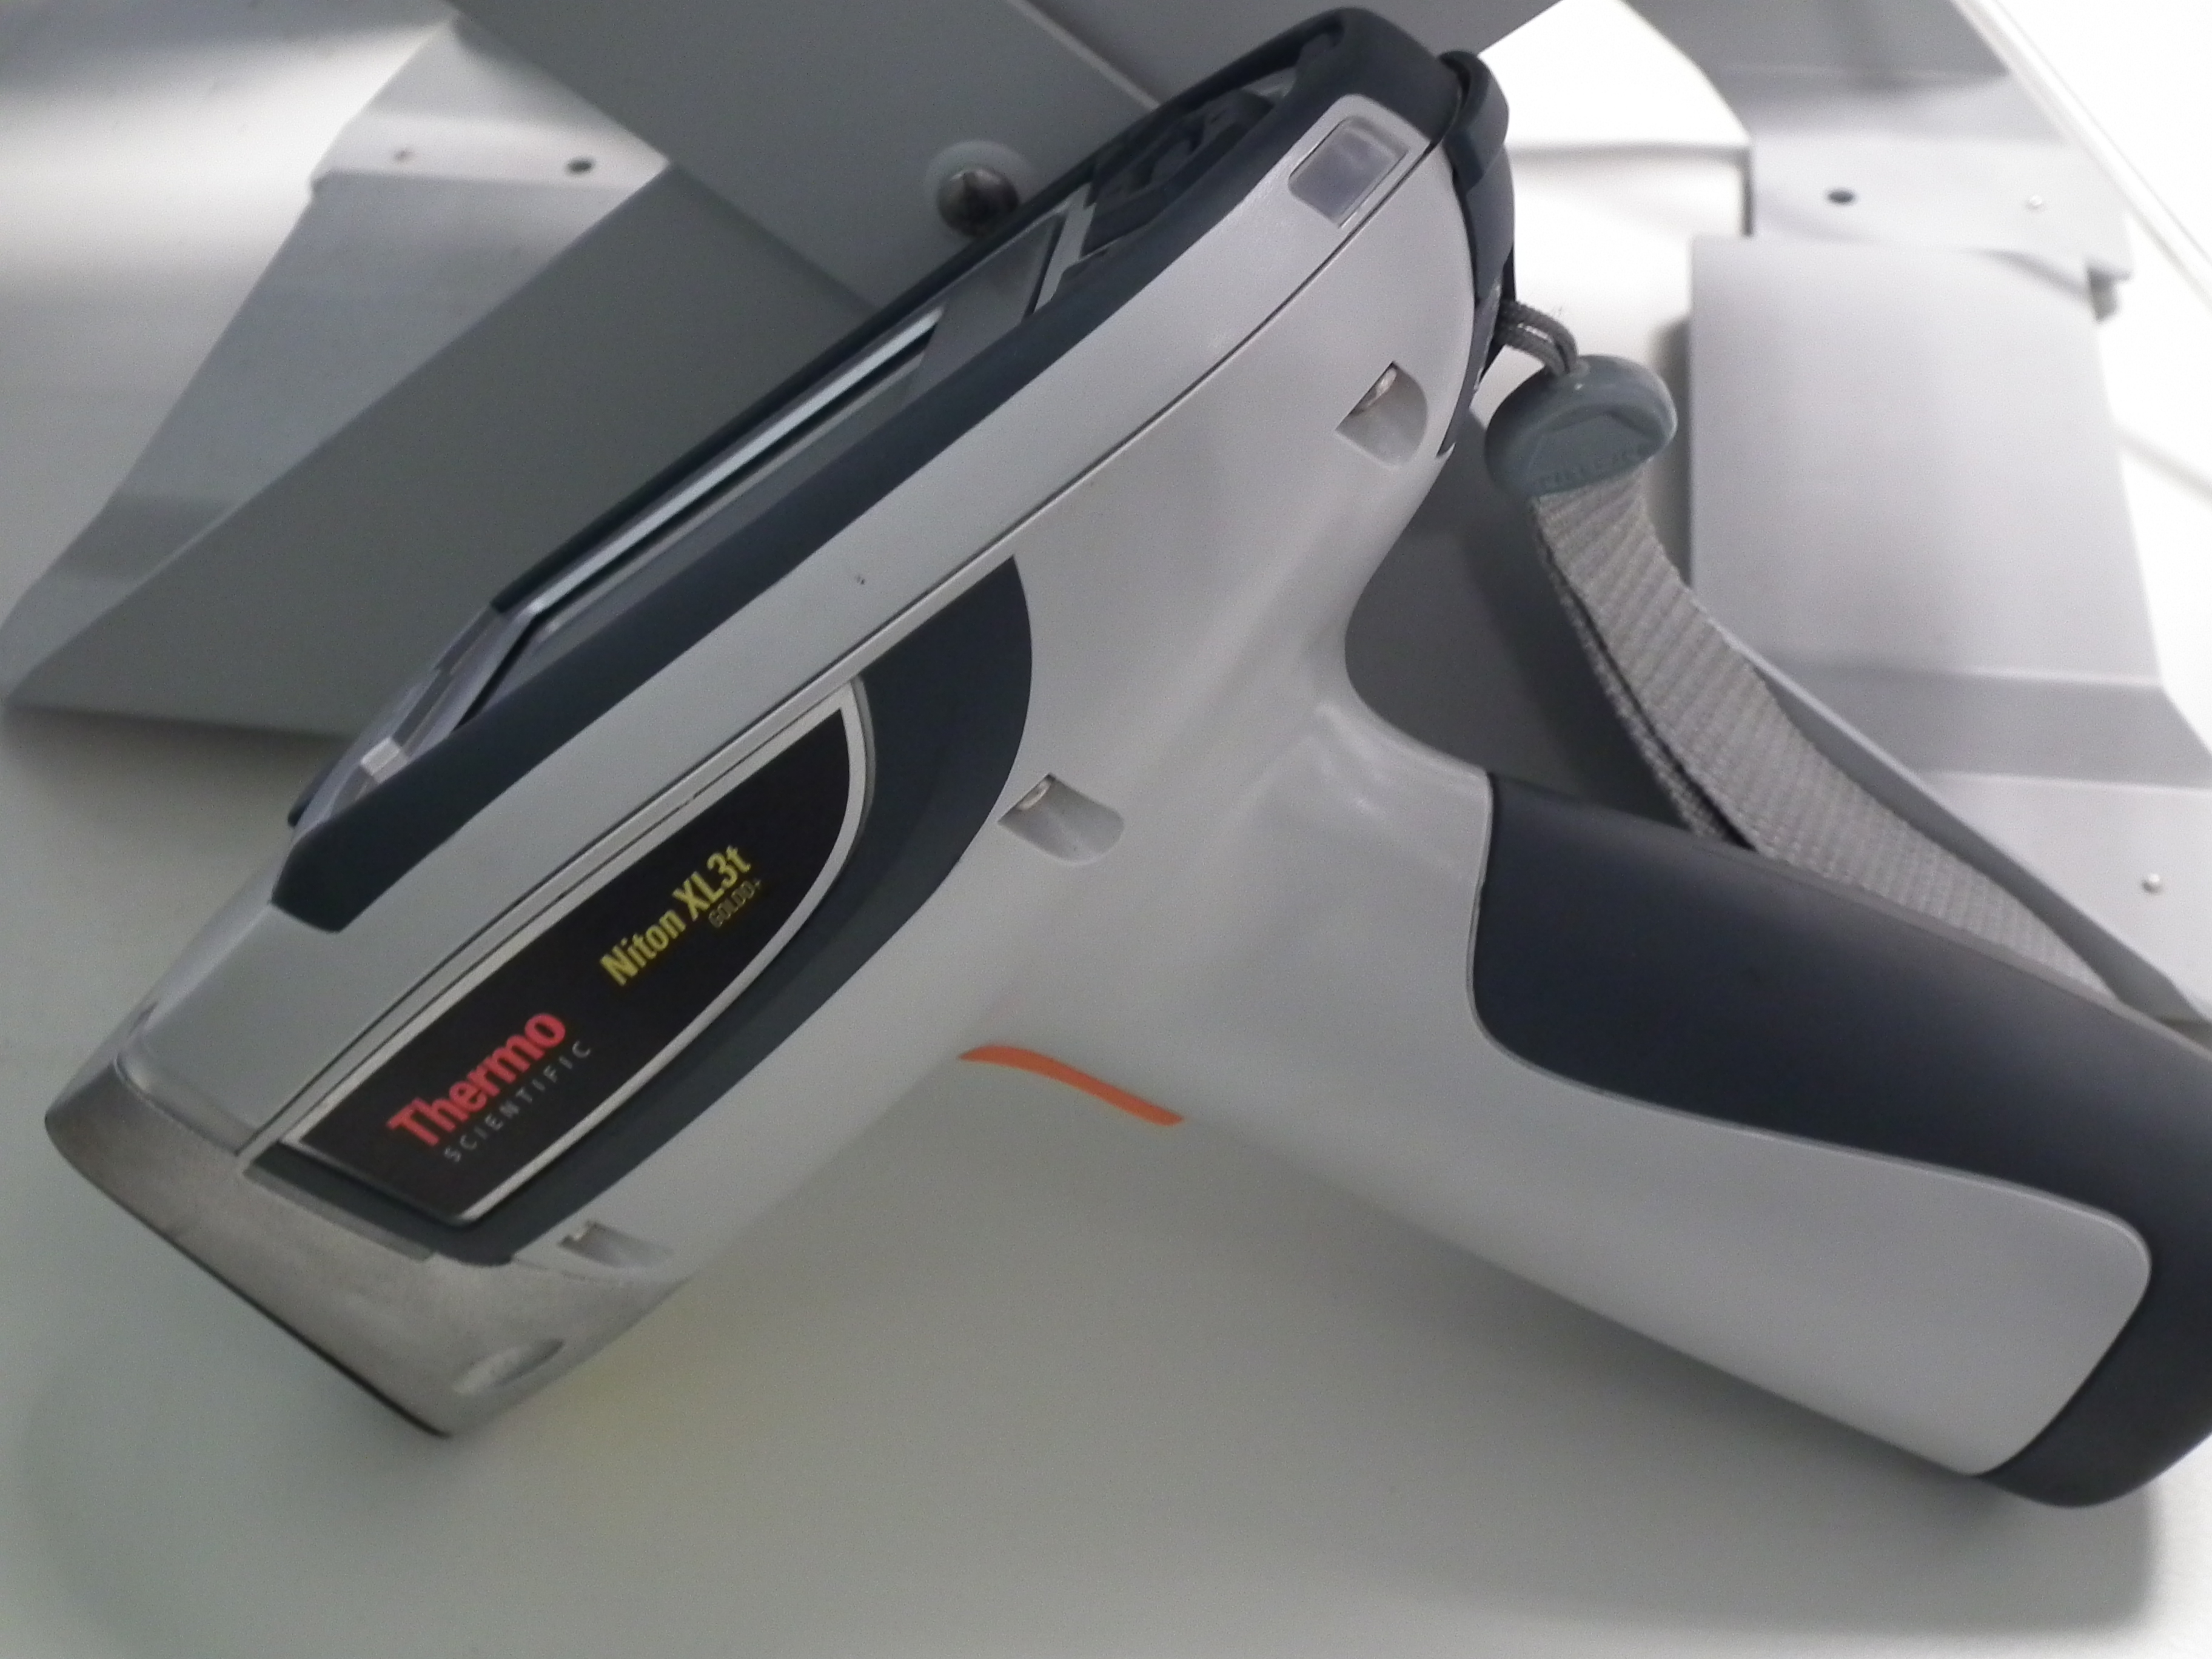 Thermo Niton XL3t Portable XRF